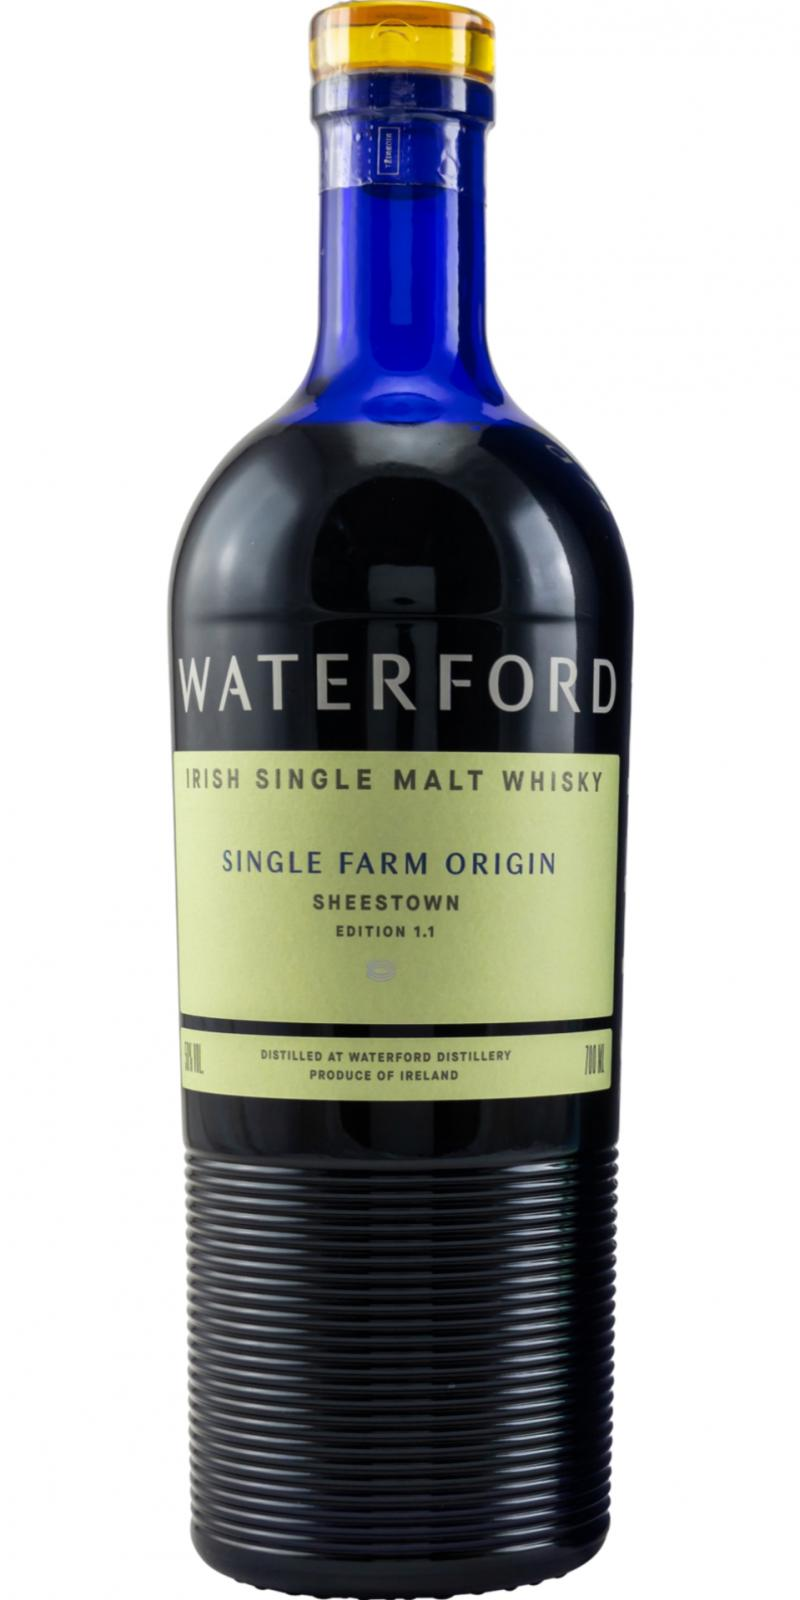 Waterford Sheestown: Edition 1.1